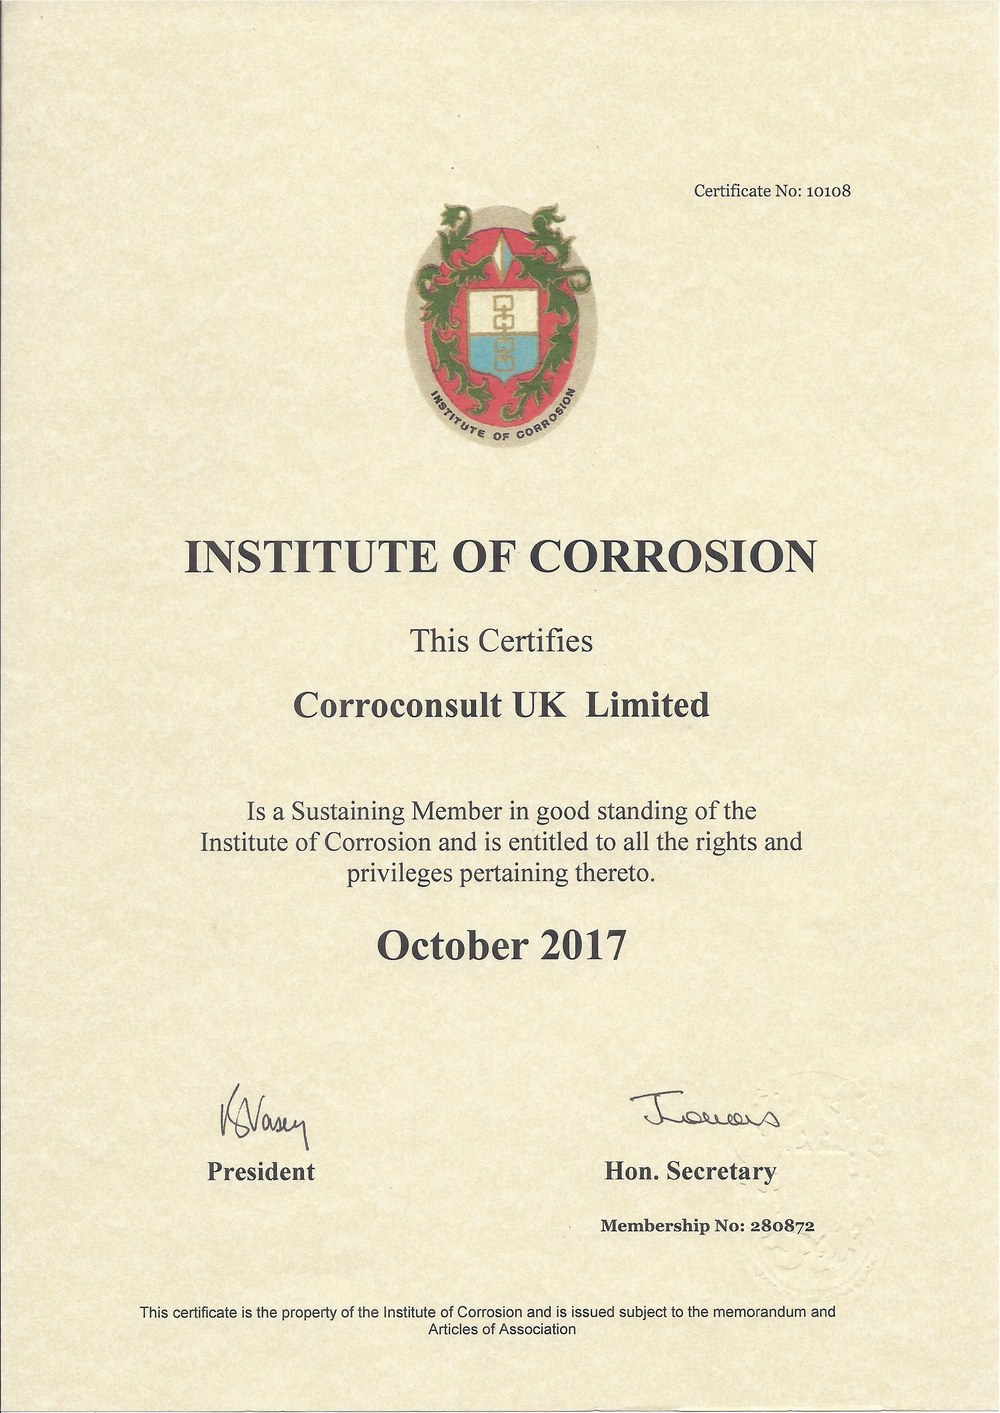 Institute of Corrosion - Corroconsult UK Limited are pleased to renew their association with the Institute of Corrosion (iCorr) as a Sustaining Member.